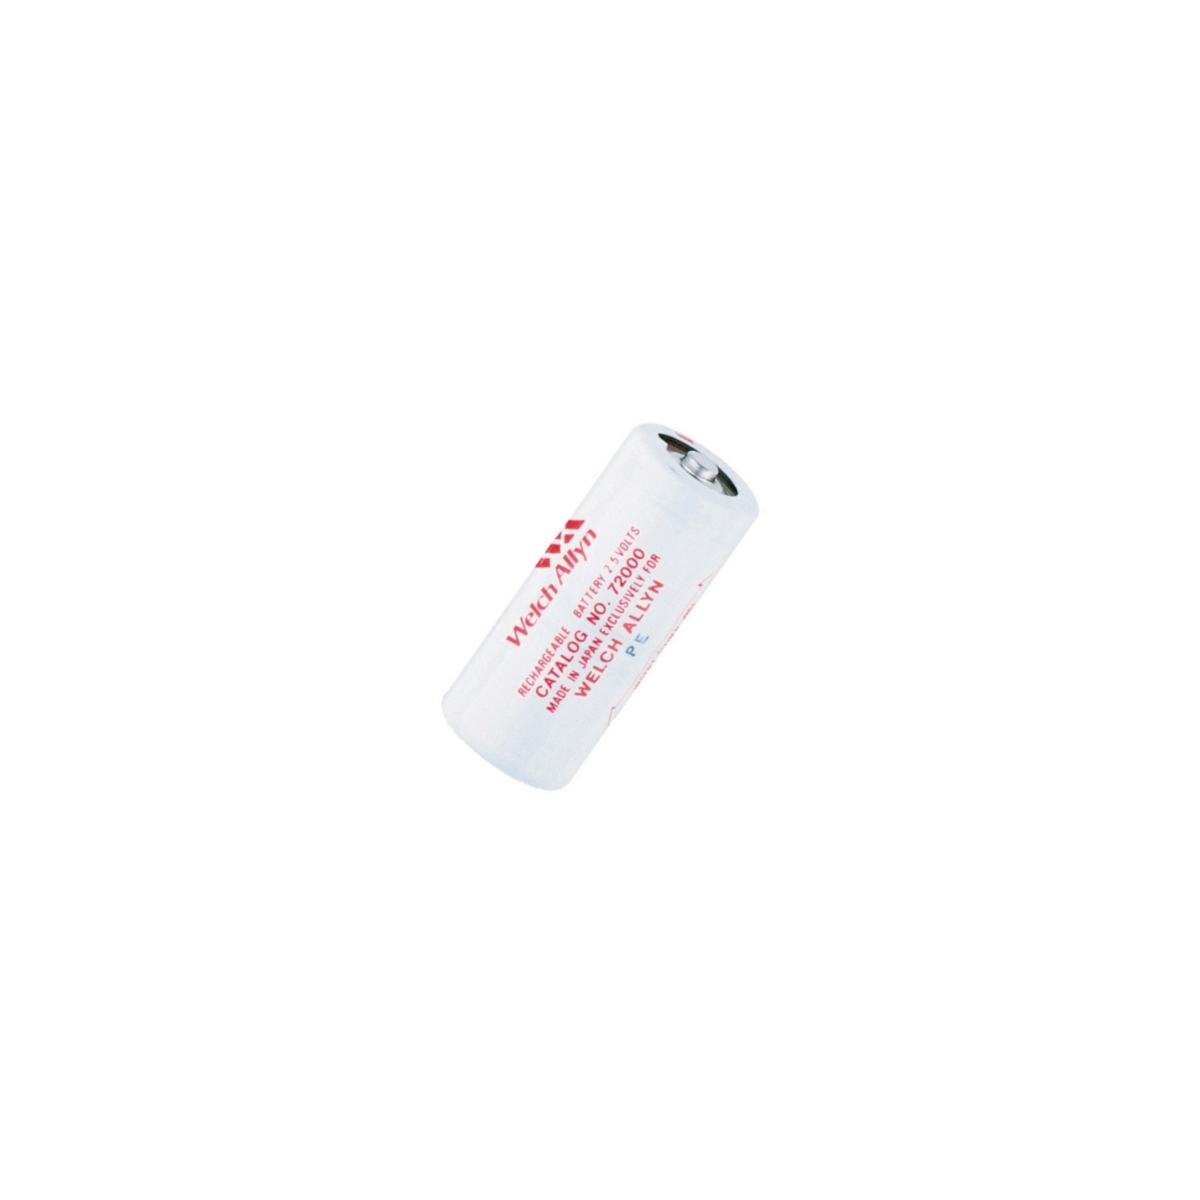 Welch Allyn 2.5v Battery - 72600